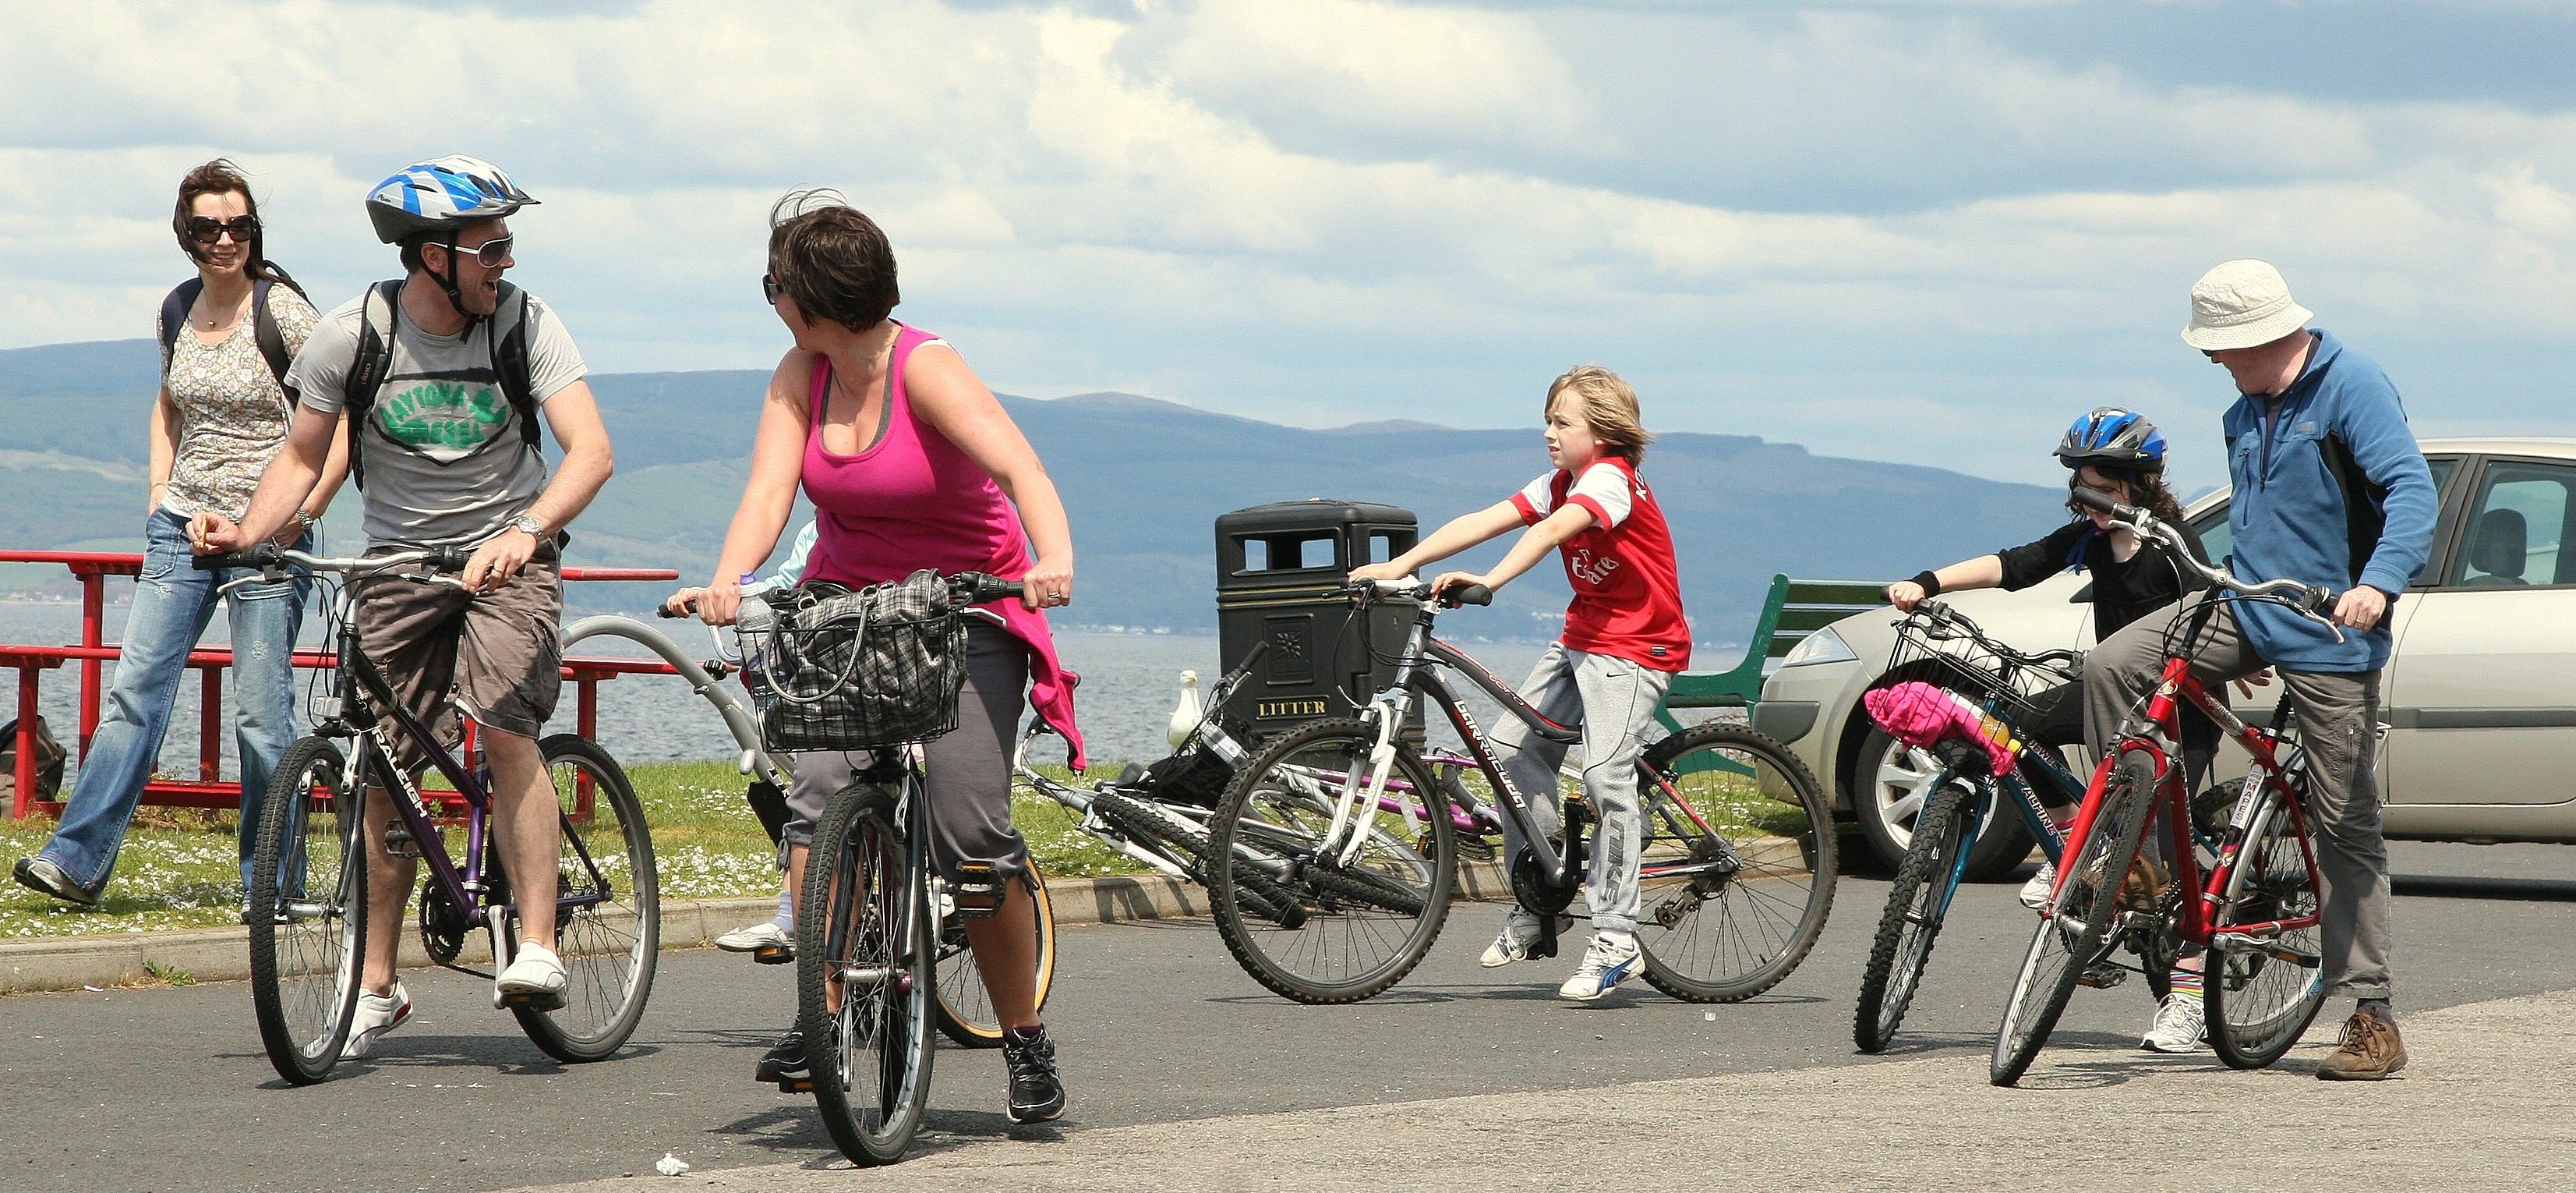 Tour de Millport - A Great Day